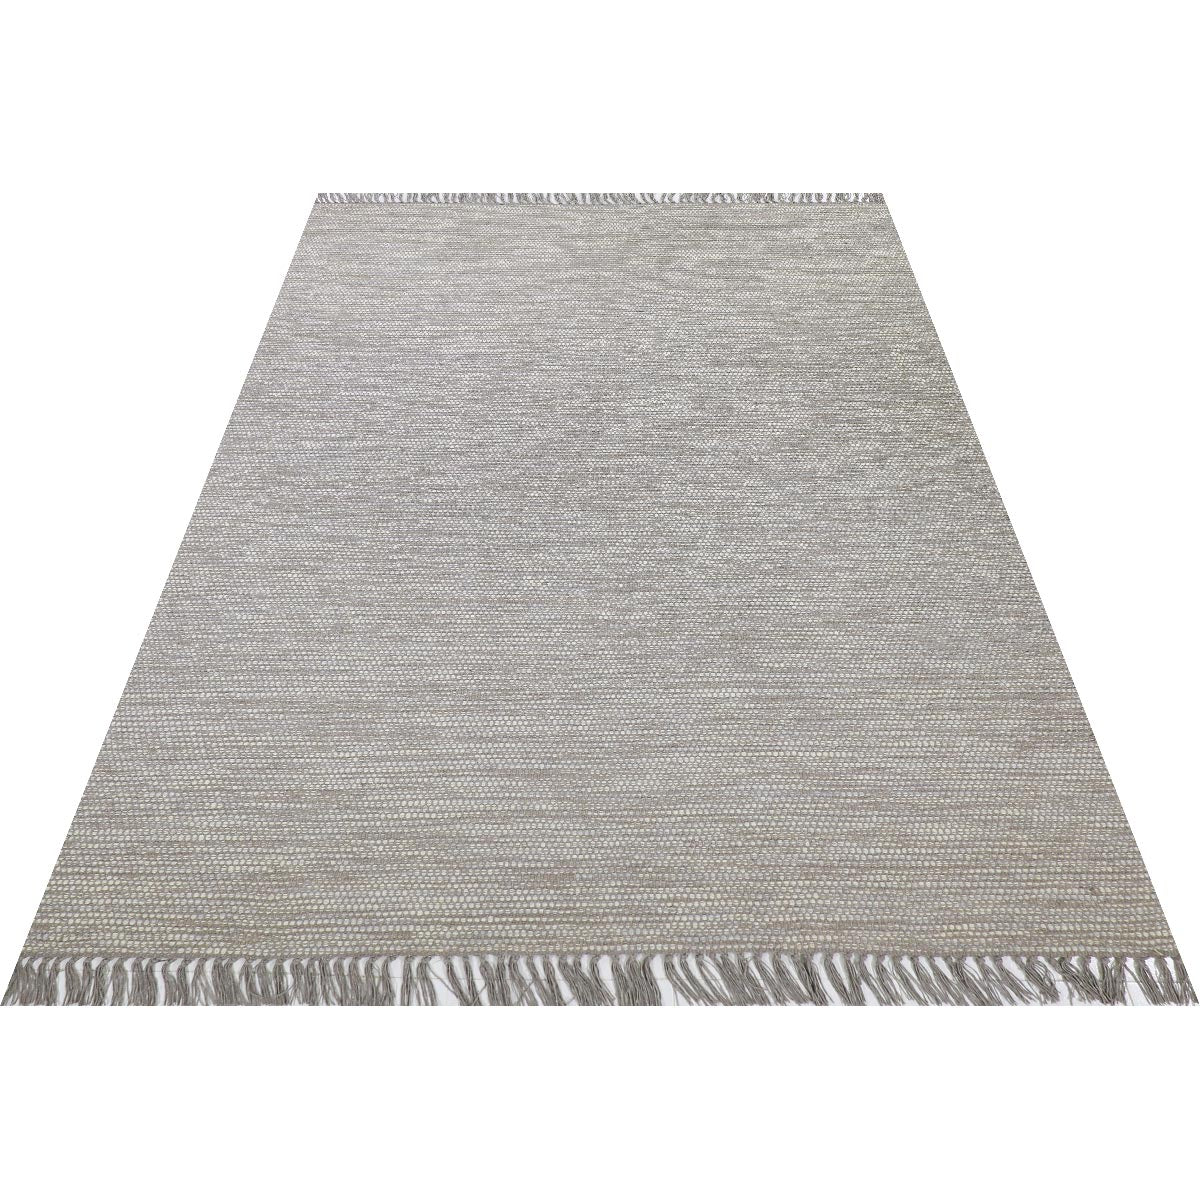 Chicago Rug 01 Dark Beige 2